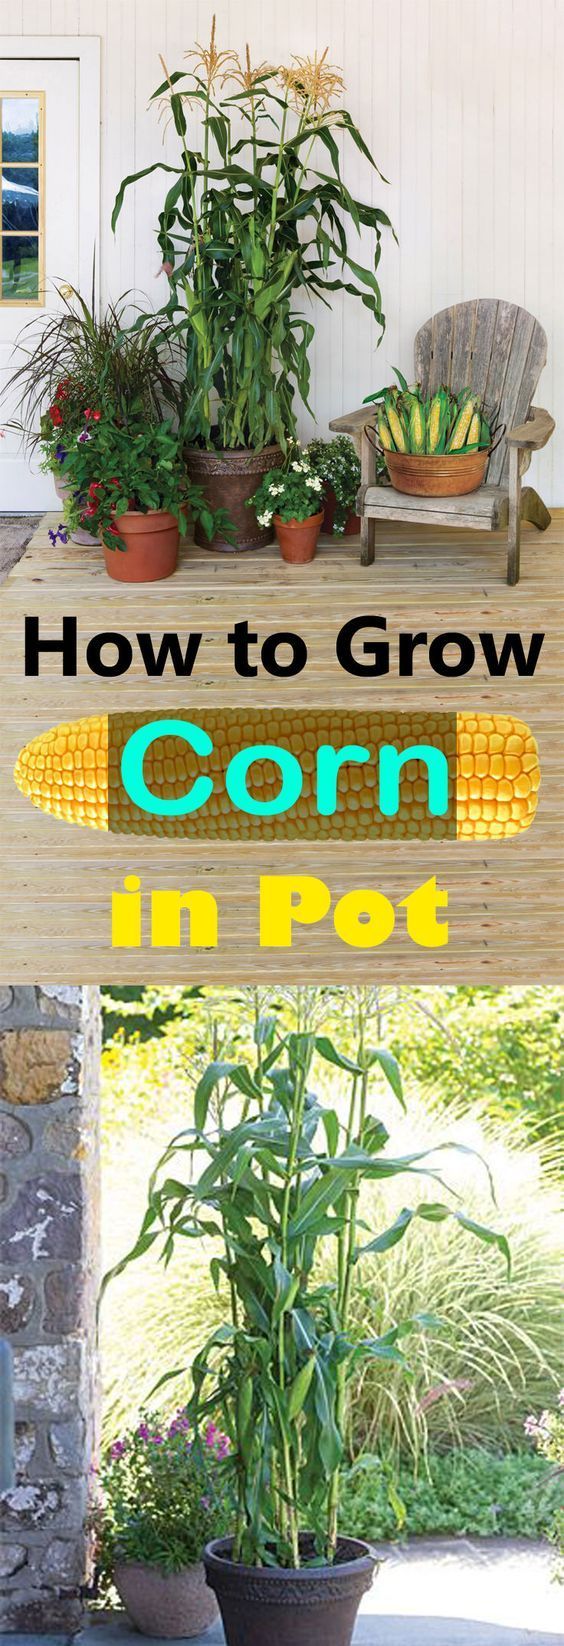 Growing corn in container is possible. All you need is a large container and you are good to harvest your fresh corns.